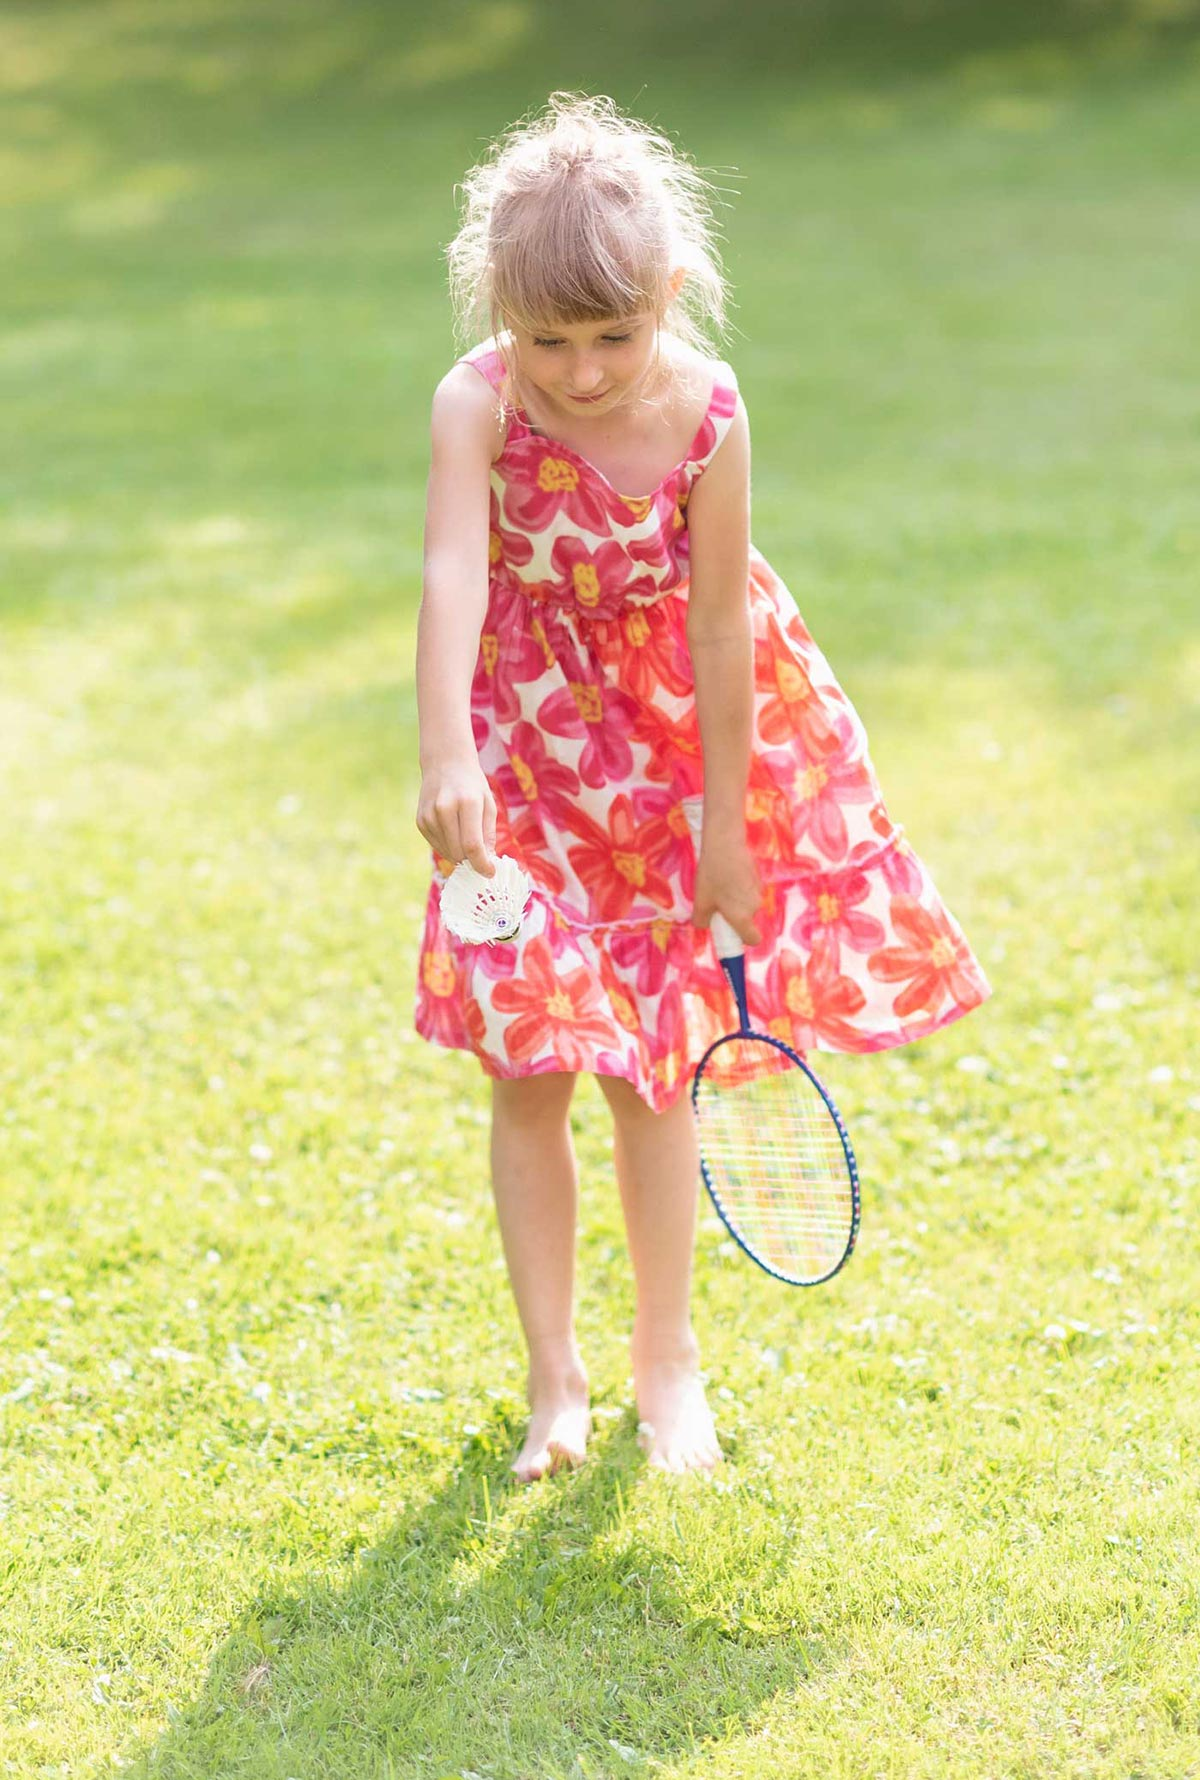 Young girl playing badminton in pink floral dress